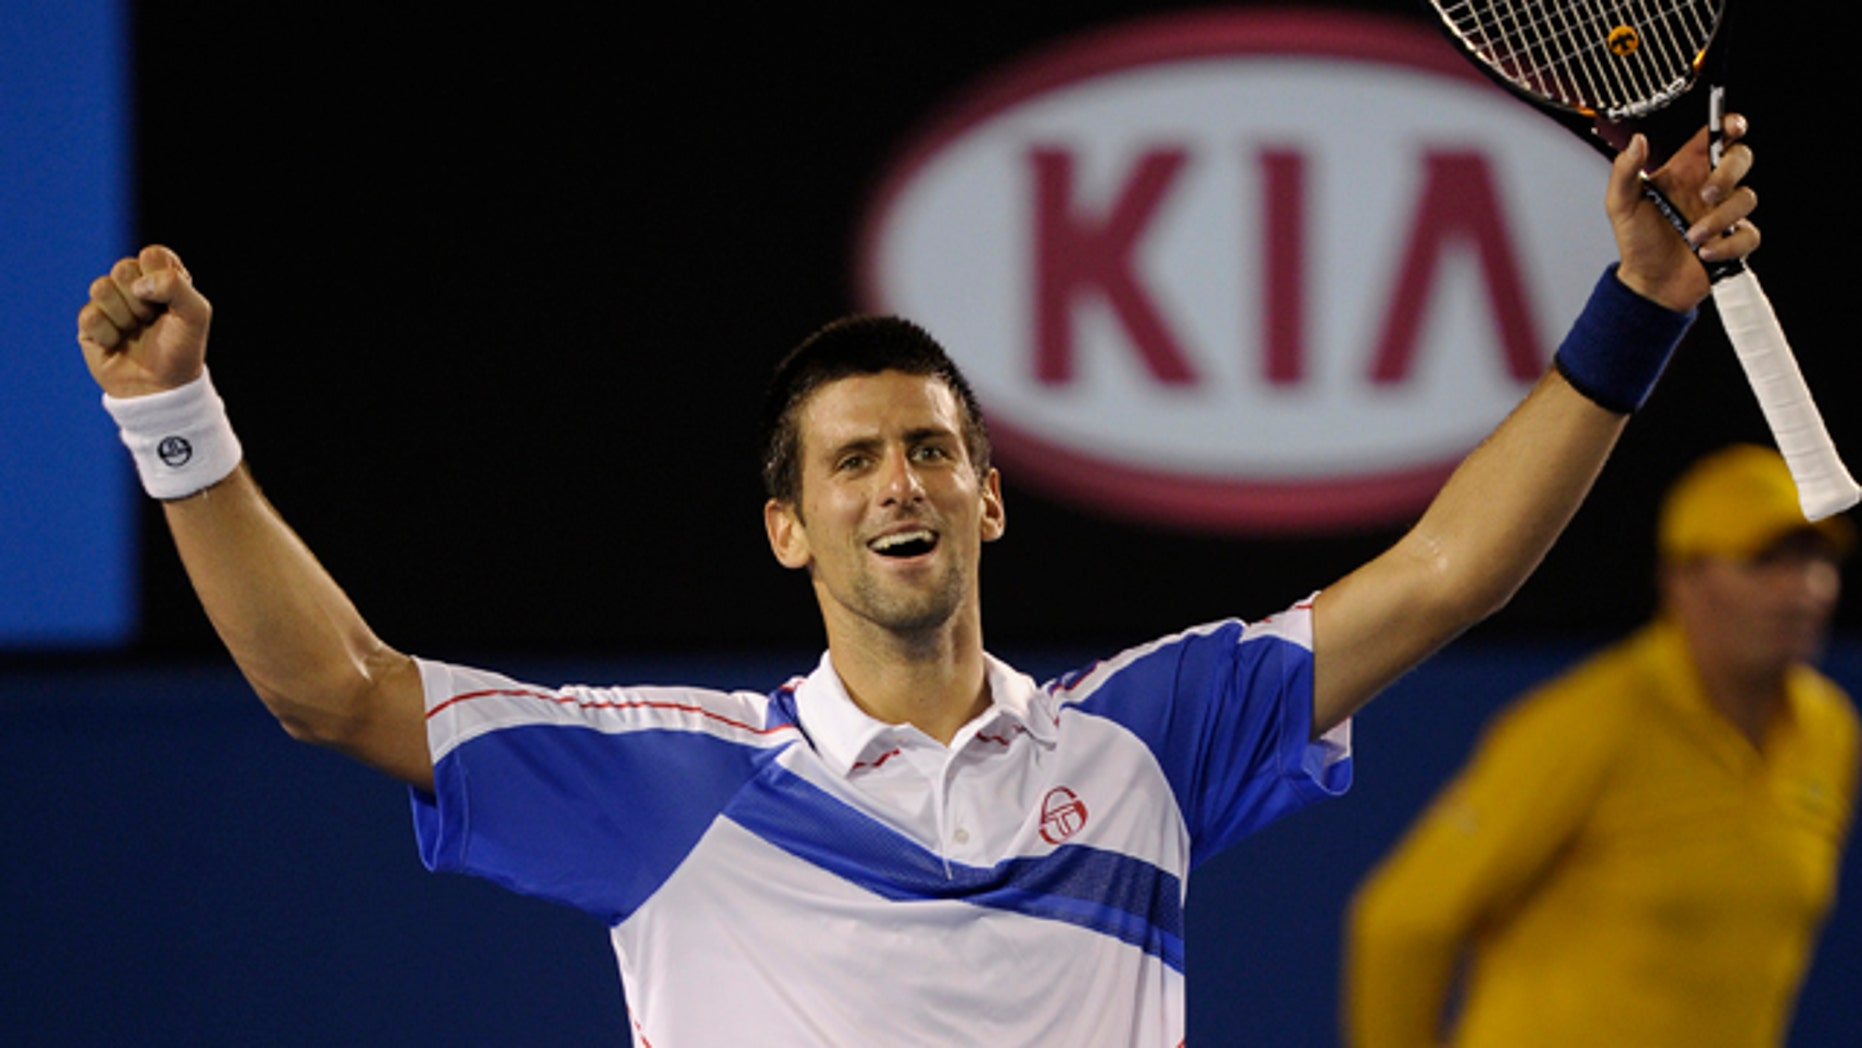 Jan. 30: Serbia's Novak Djokovic raises his arms in celebration after defeating Britain's Andy Murray in the men's singles final at the Australian Open tennis championships in Melbourne, Australia.